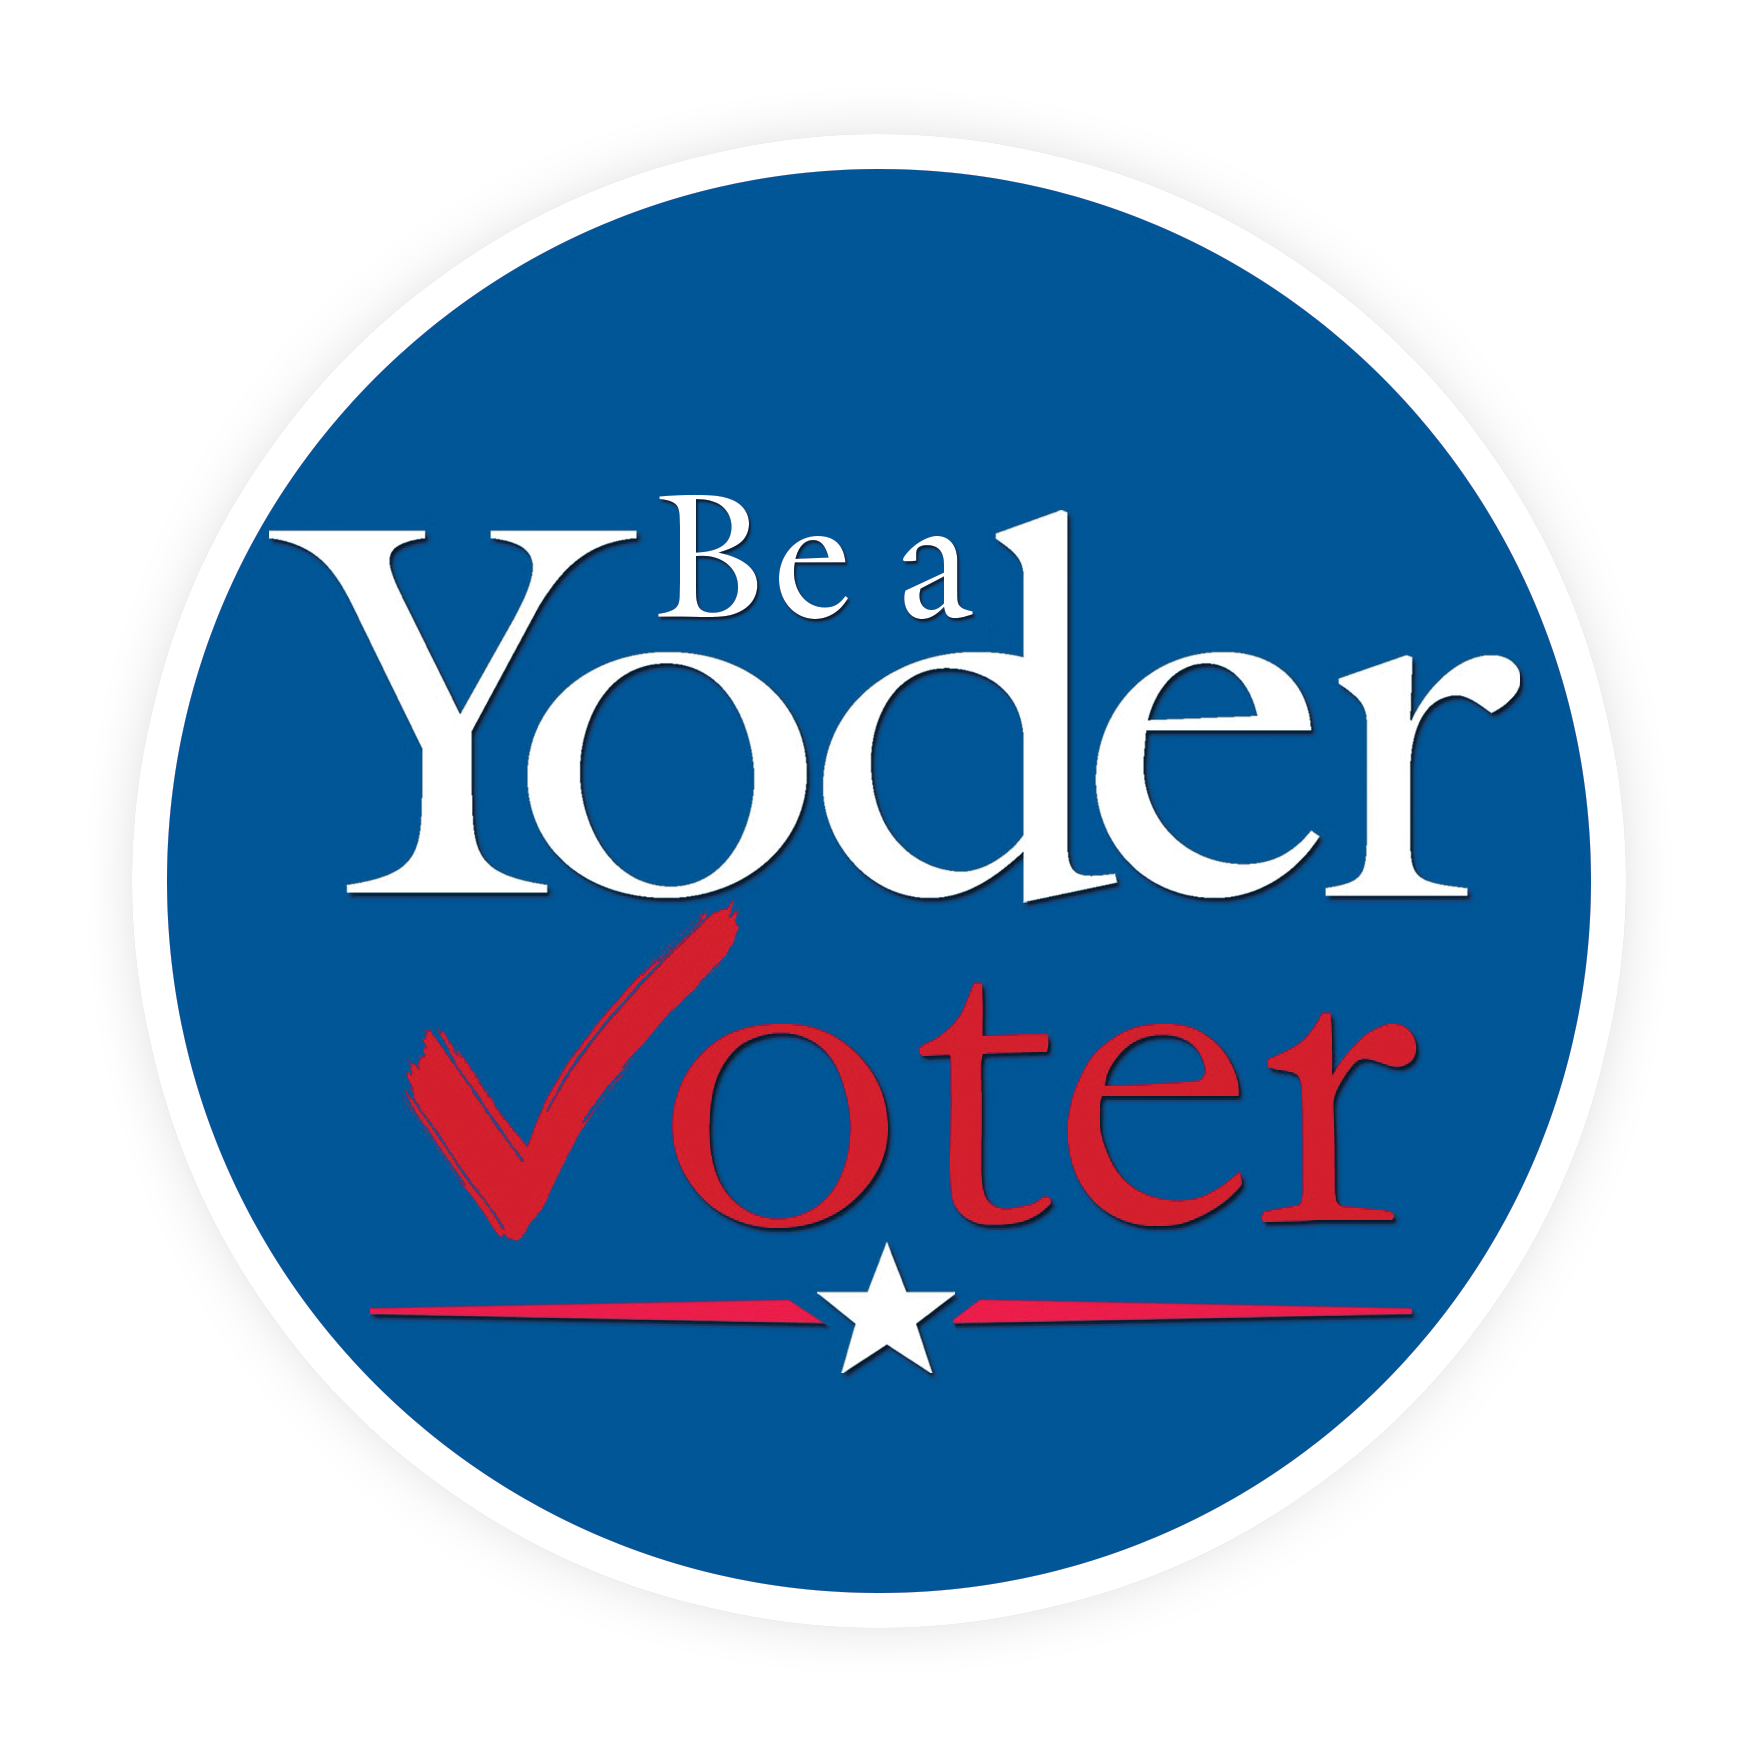 Final_Yoder_Voter_Logo.png